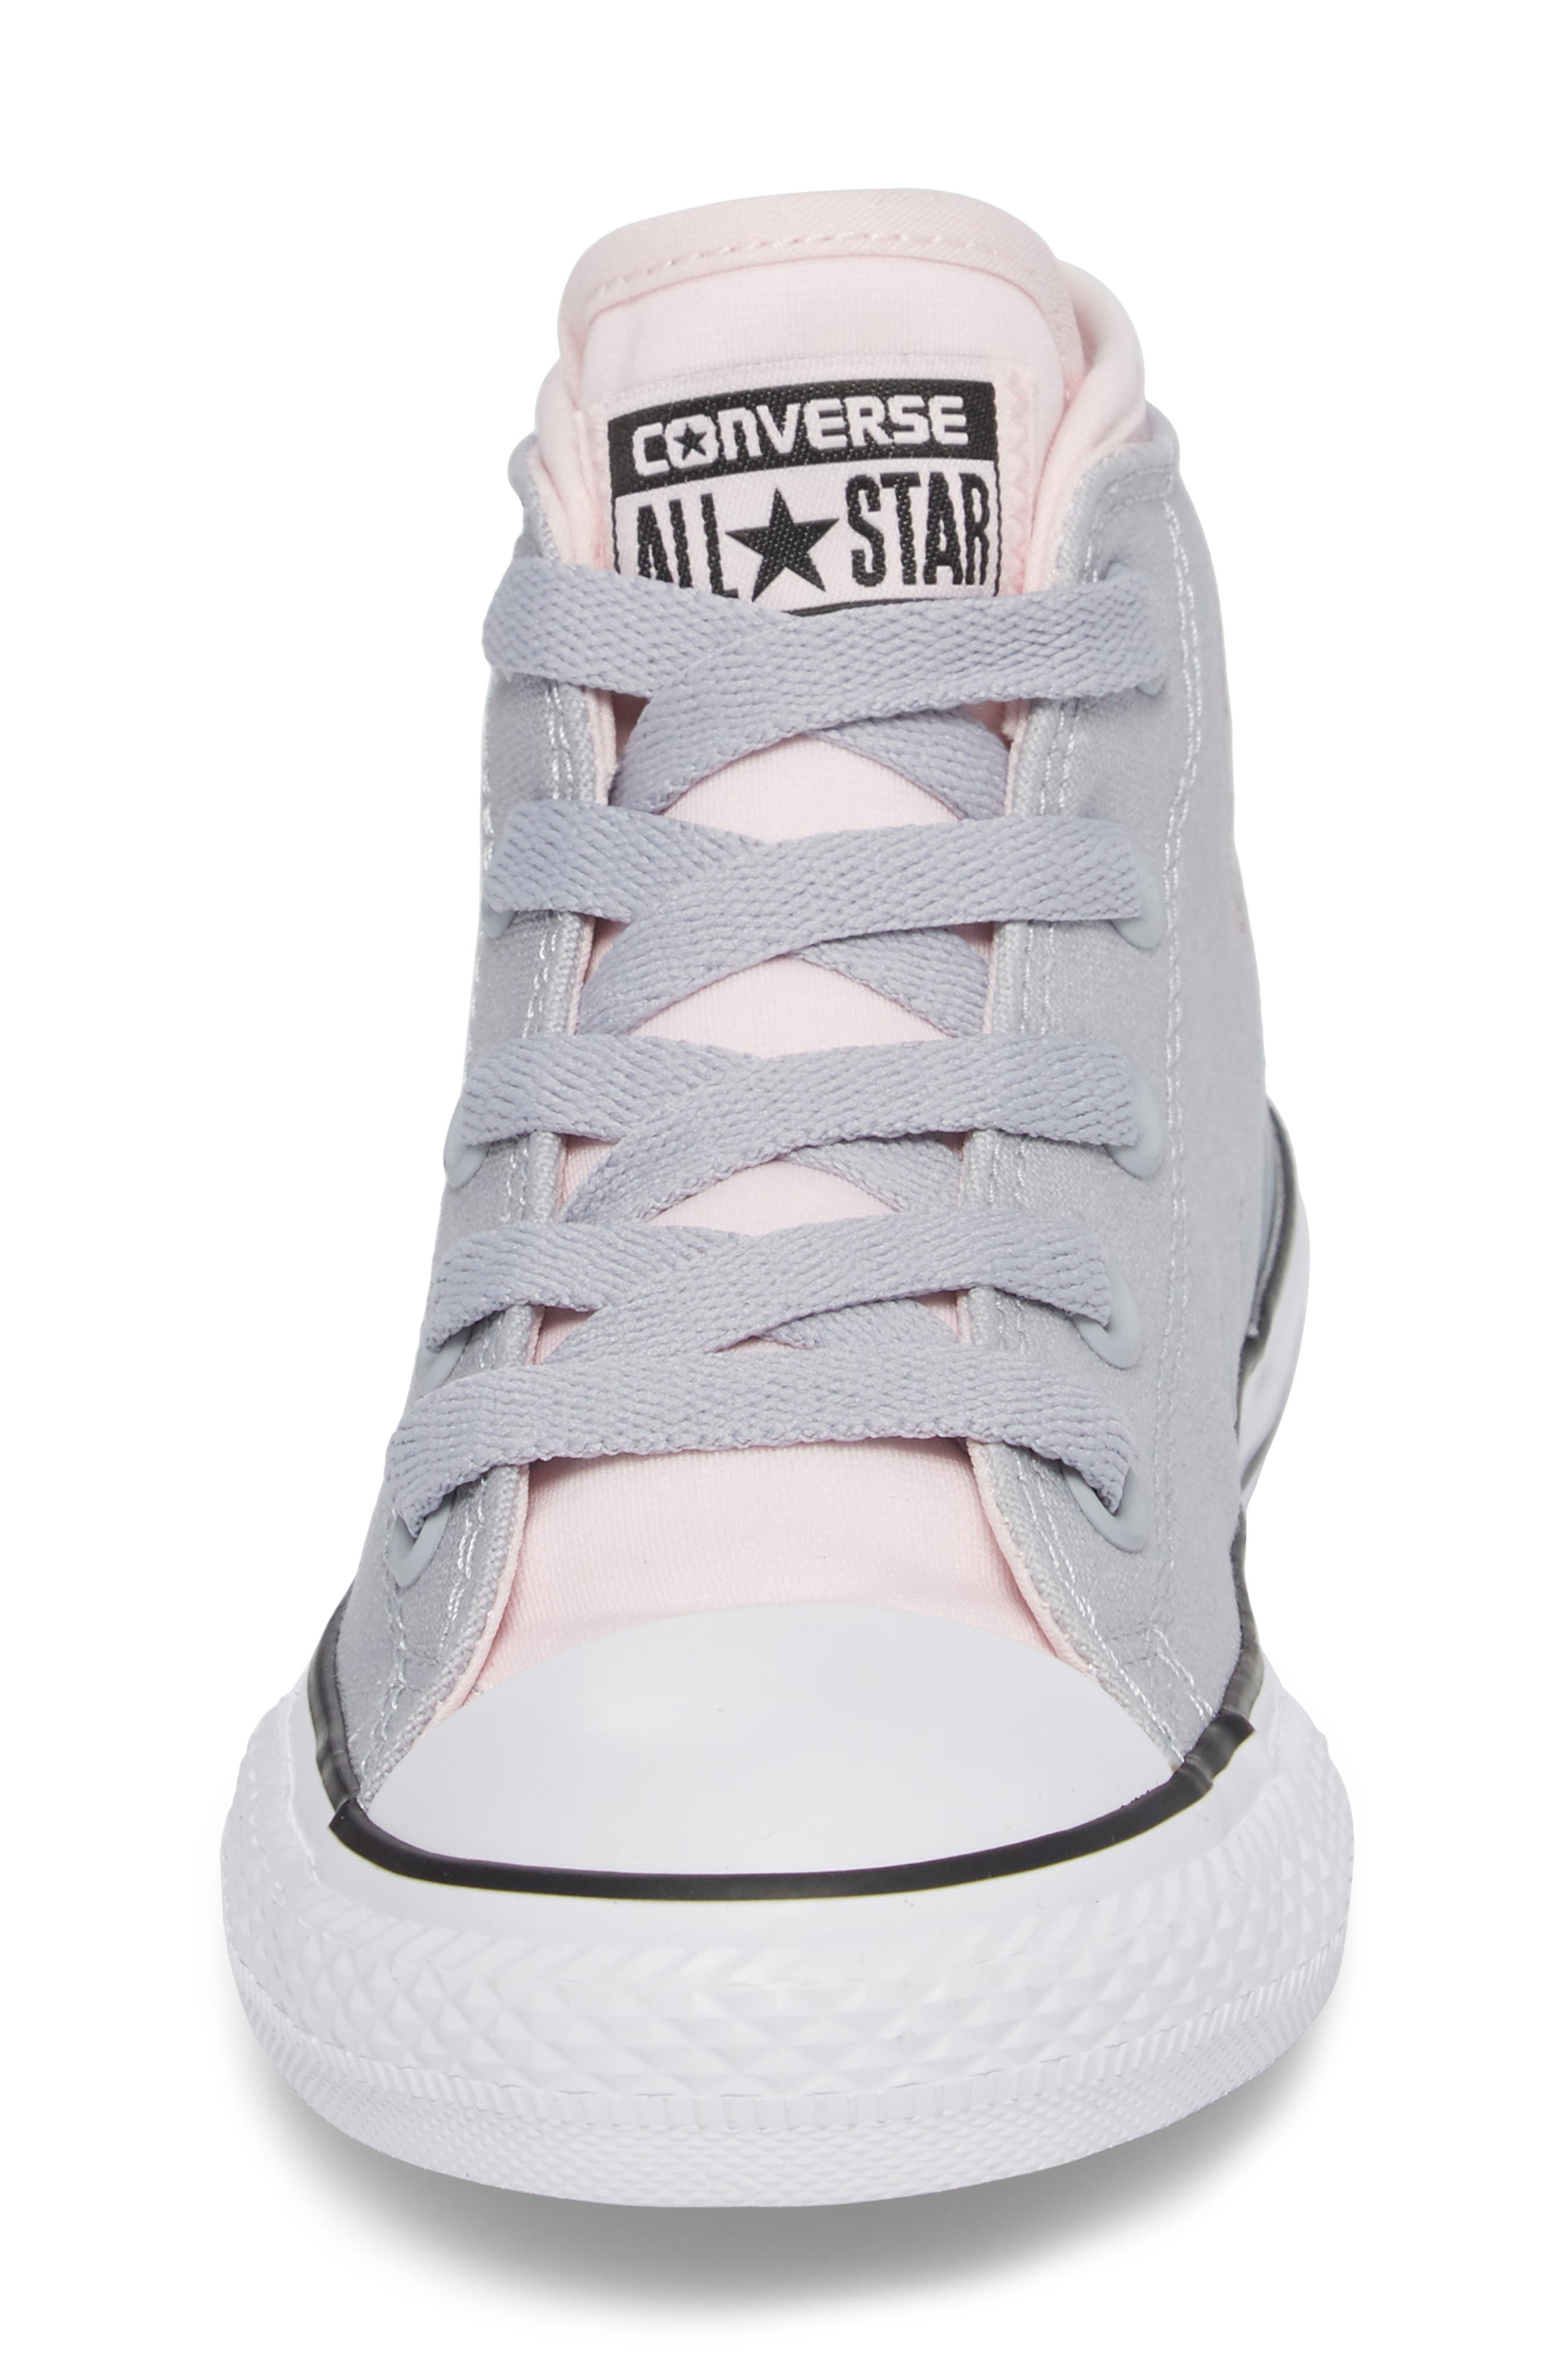 Alternate Image 4  - Converse Chuck Taylor® All Star® Syde Street High Top Sneaker (Baby, Walker, Toddler, Little Kid & Big Kid)